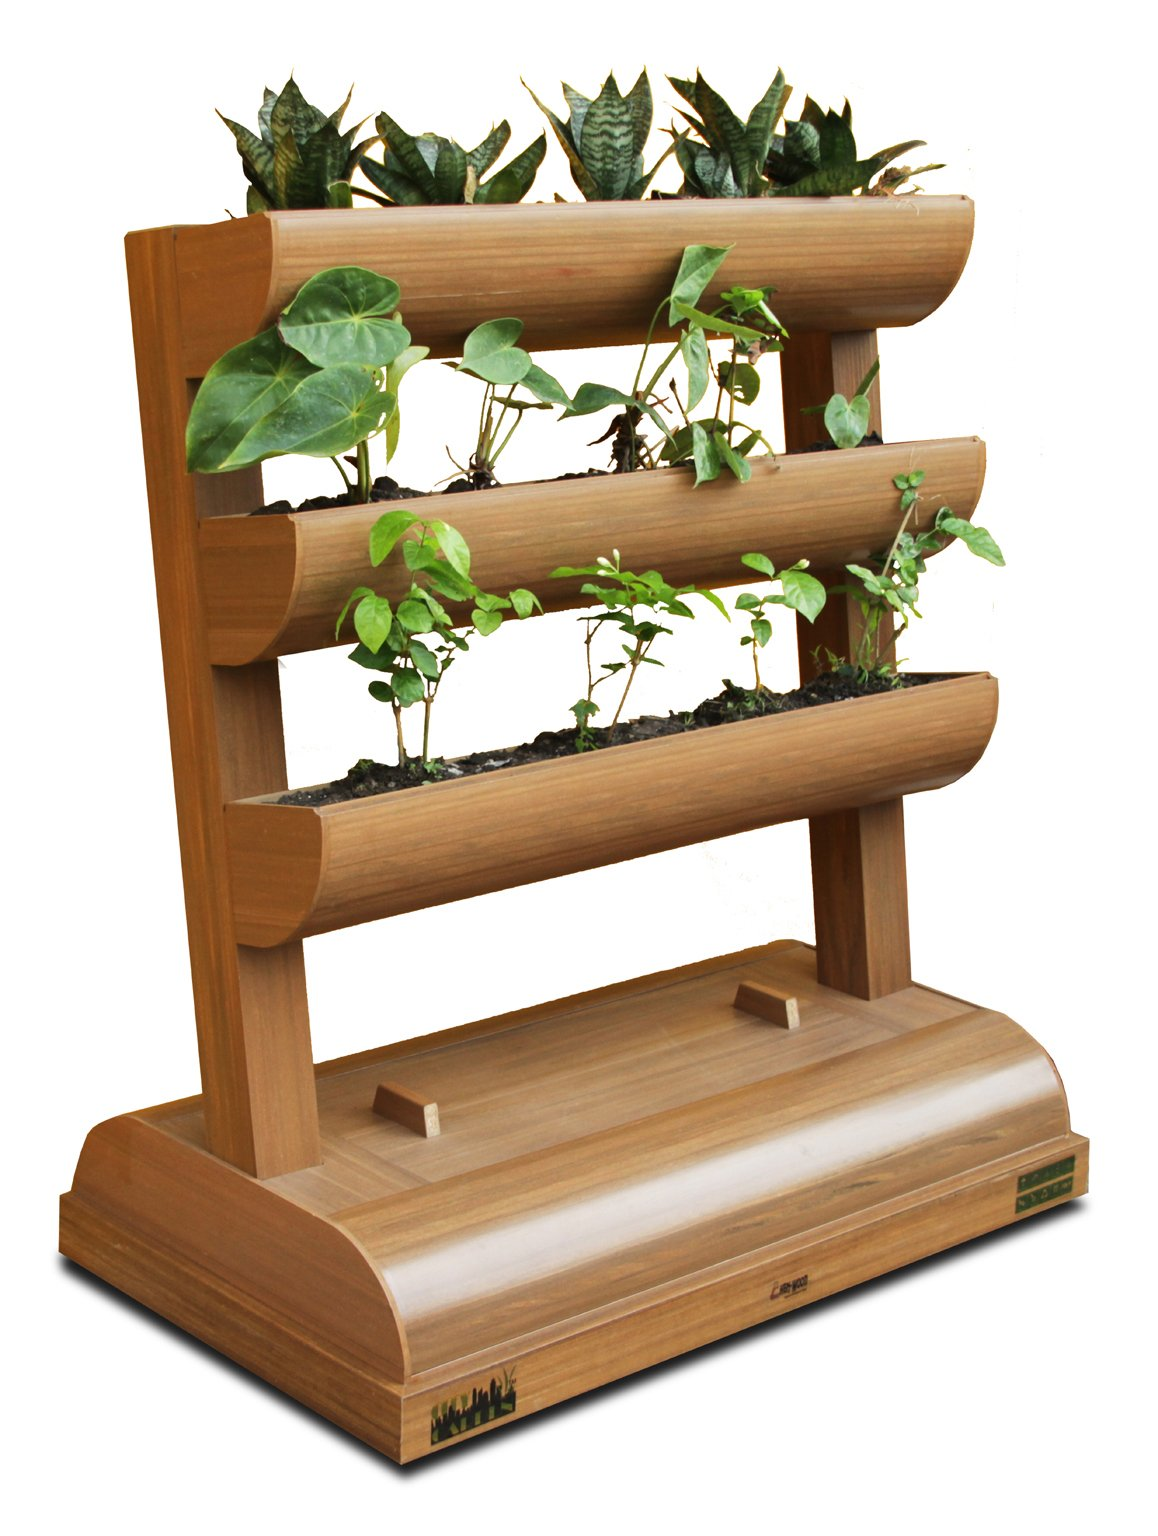 DC America City Garden CG-SP-392140-T Vertical Planter with Storage Box, 3 Shelves by D C America